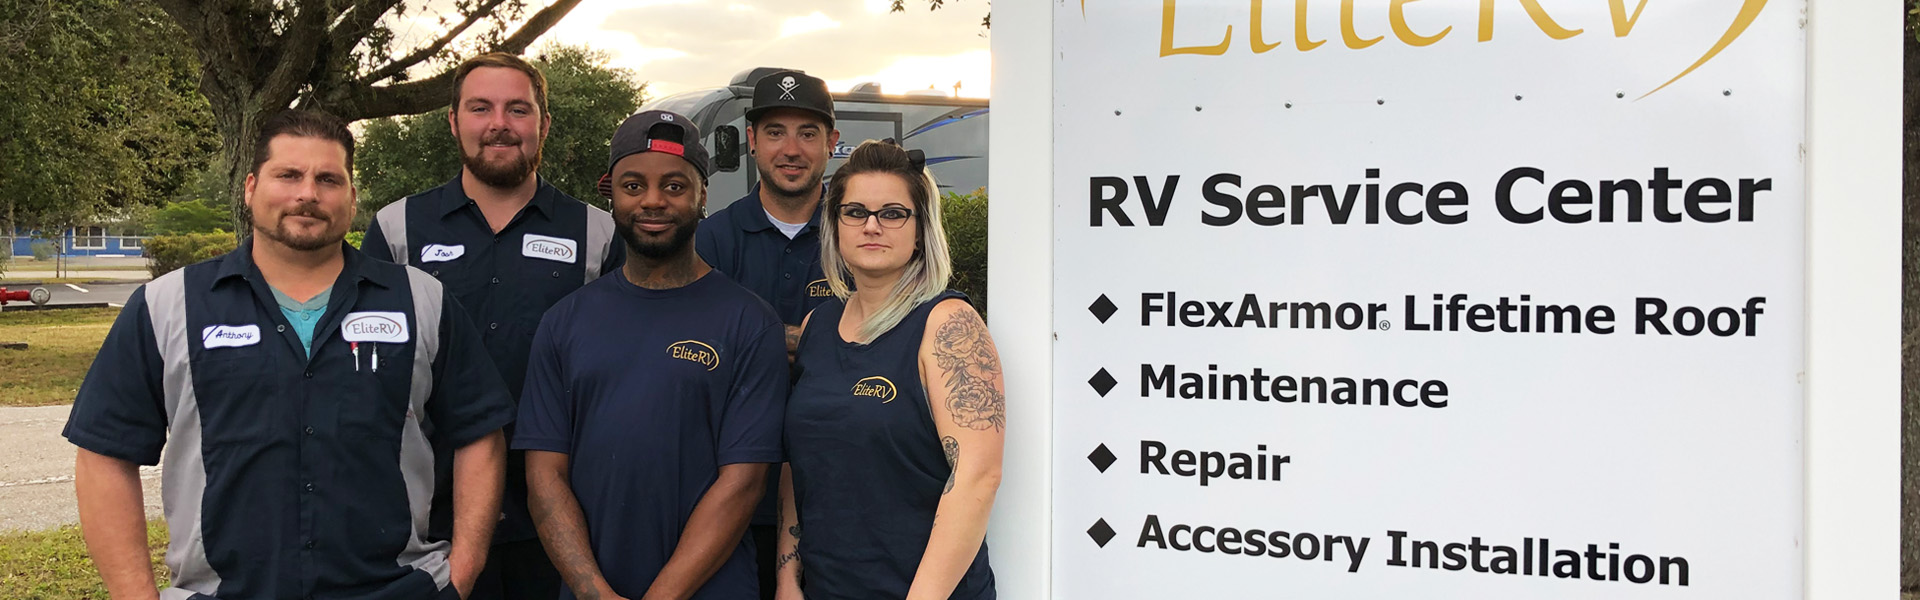 Dependable RV Services Crew